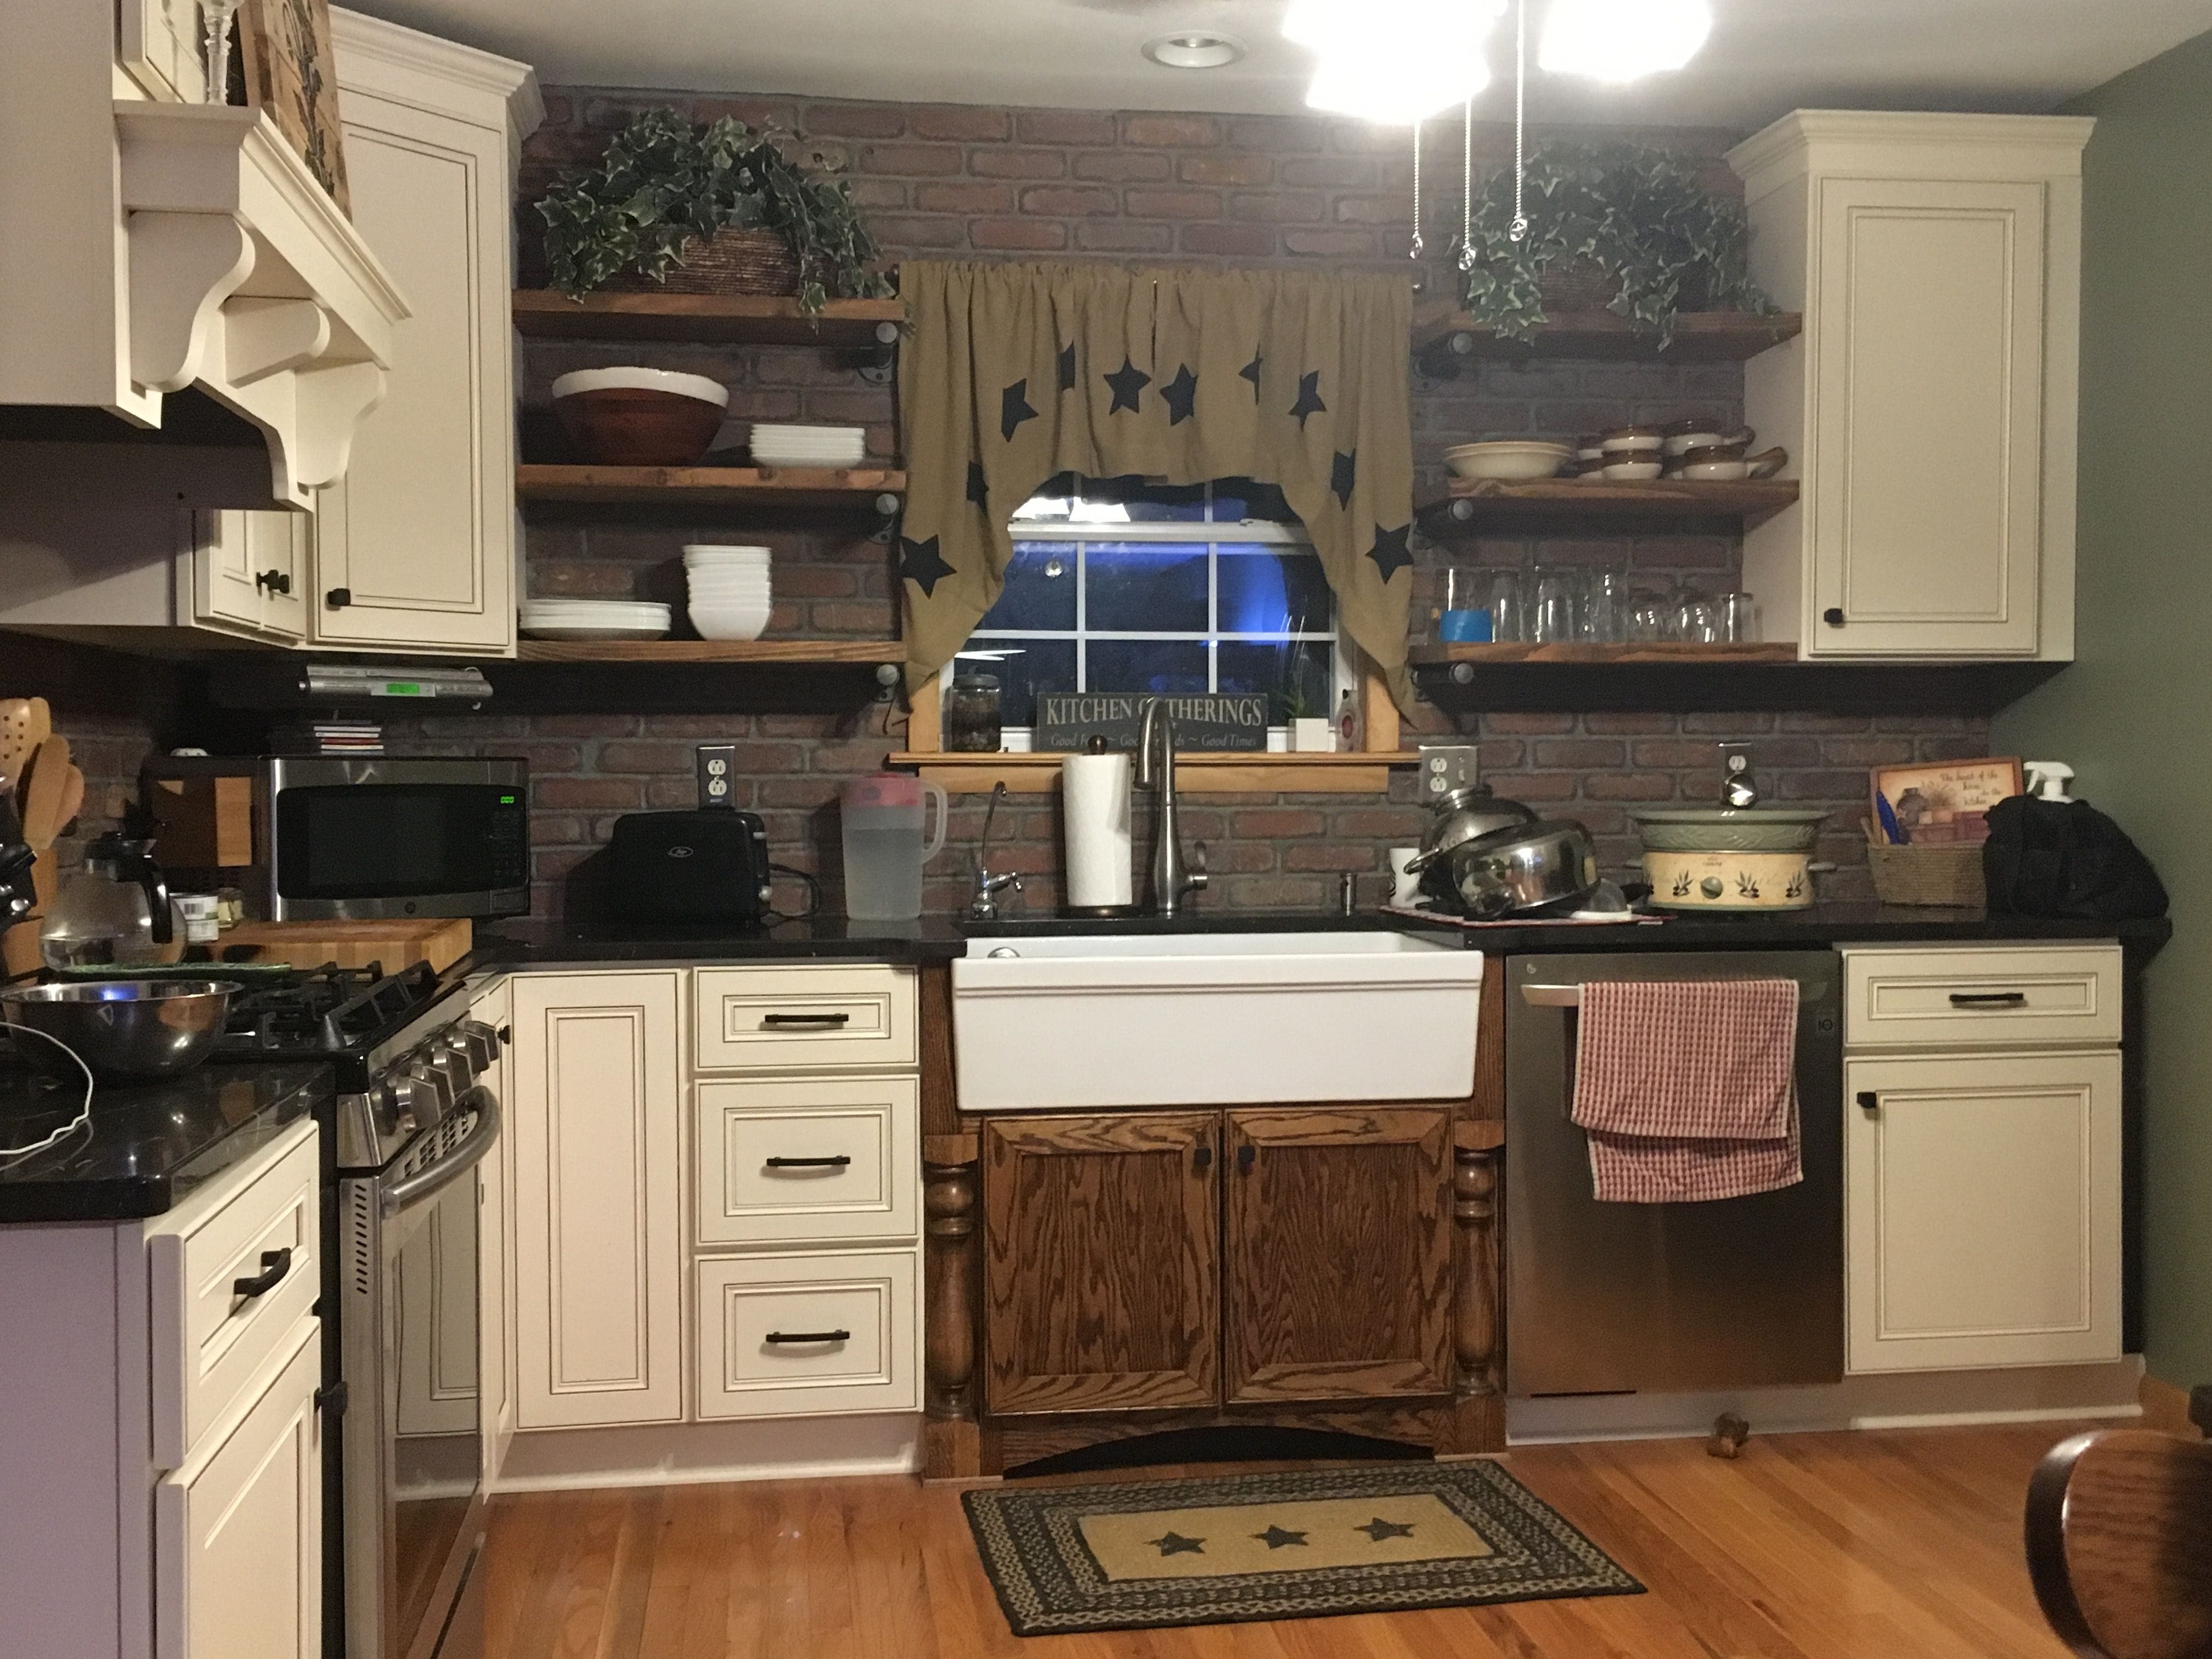 Diy Kitchen Finally Done Lilly Ann Cabinets Work Very Good And Save